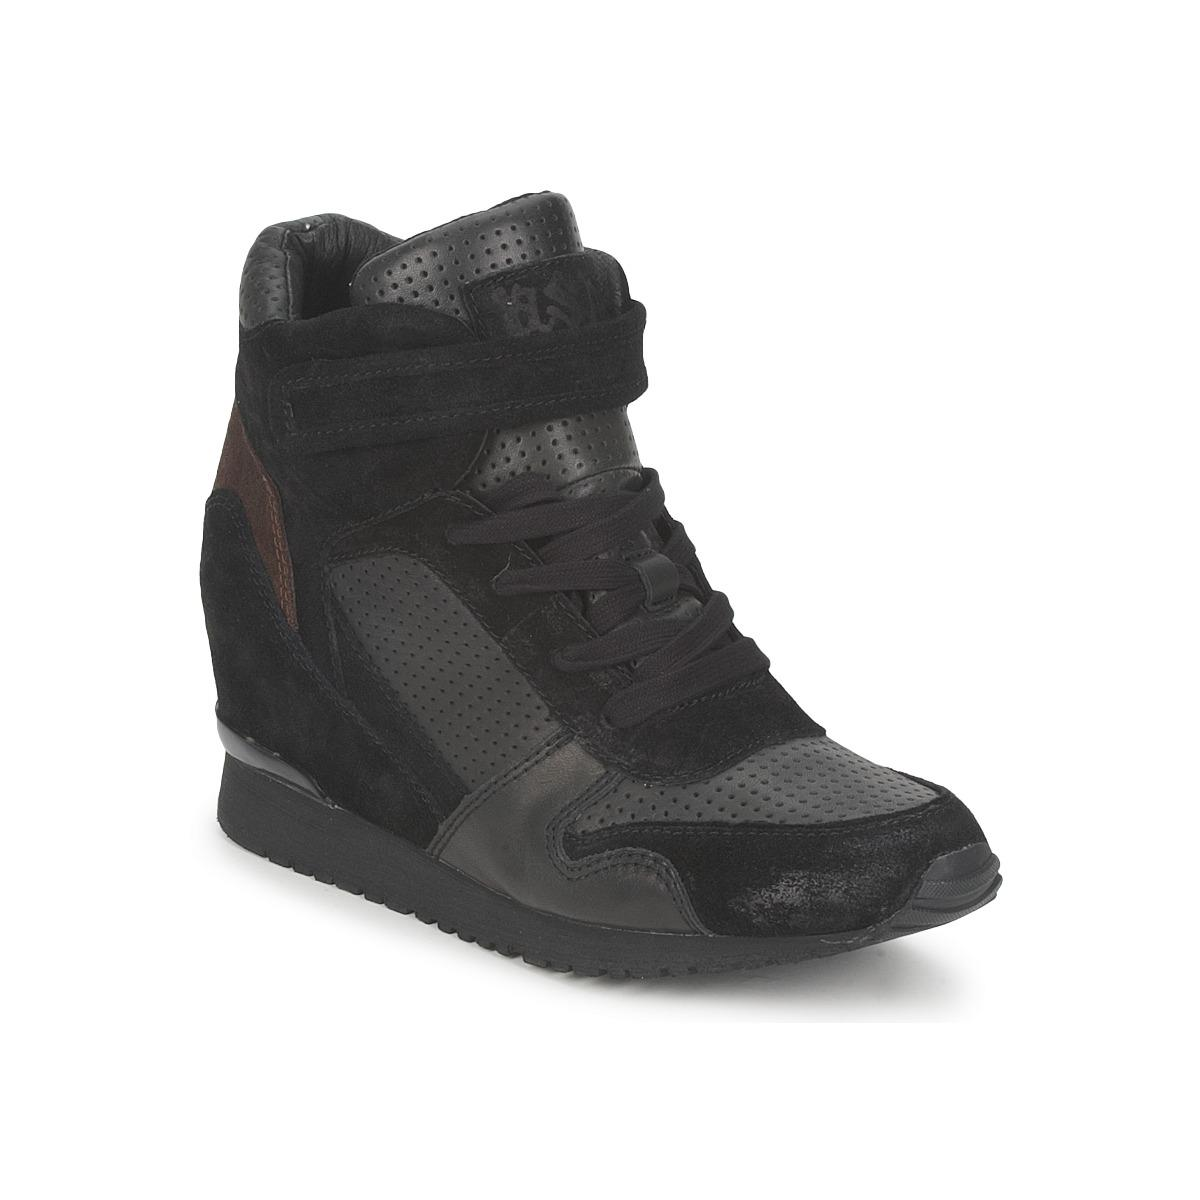 Ash Drum Women s Shoes (high-top Trainers) In Black in Black - Save ... 81802e5be1